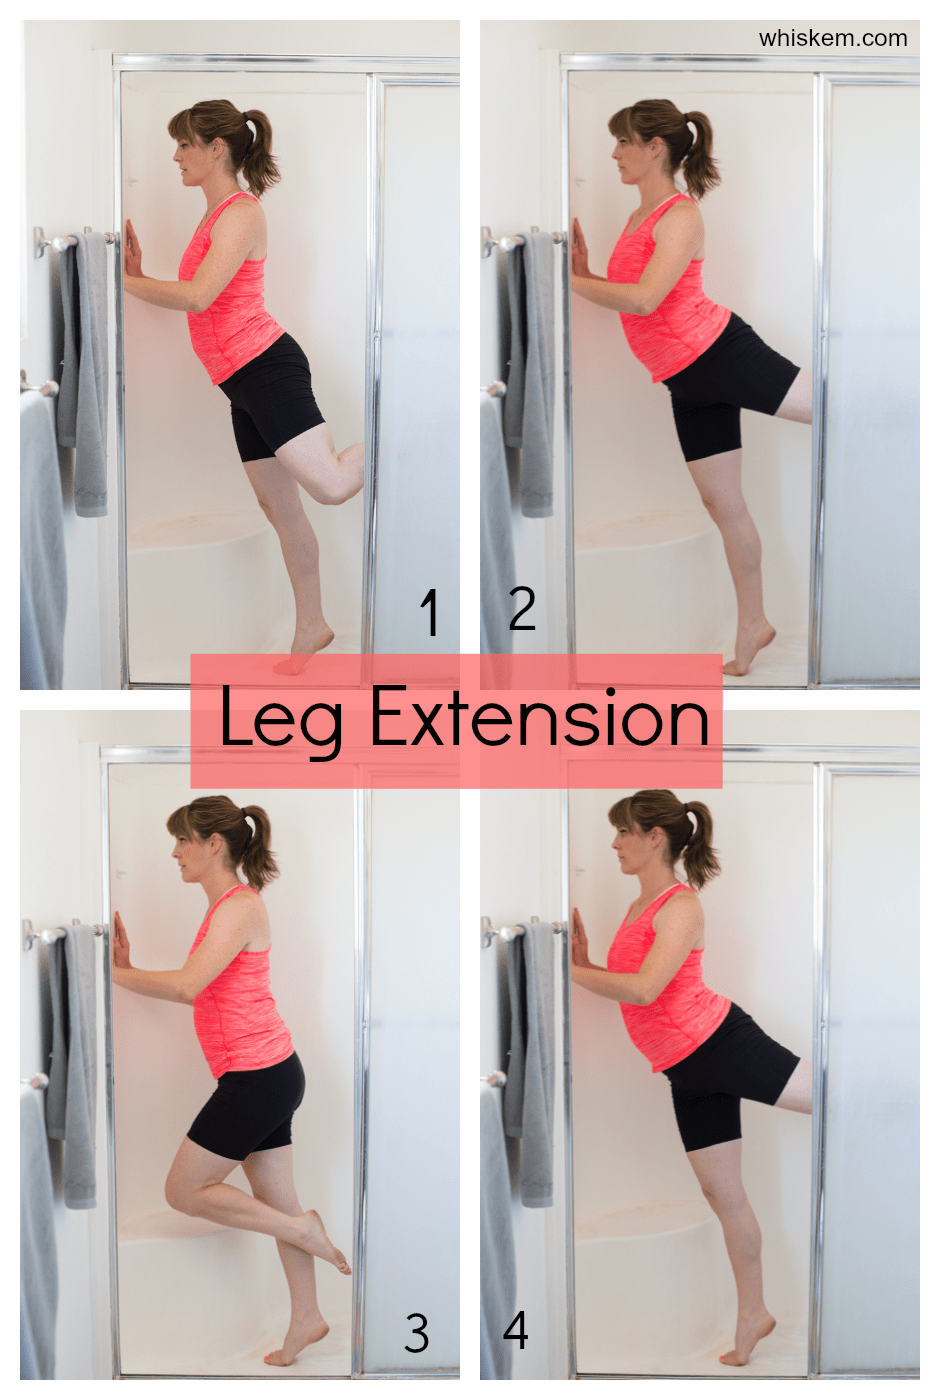 leg-extension-instructions